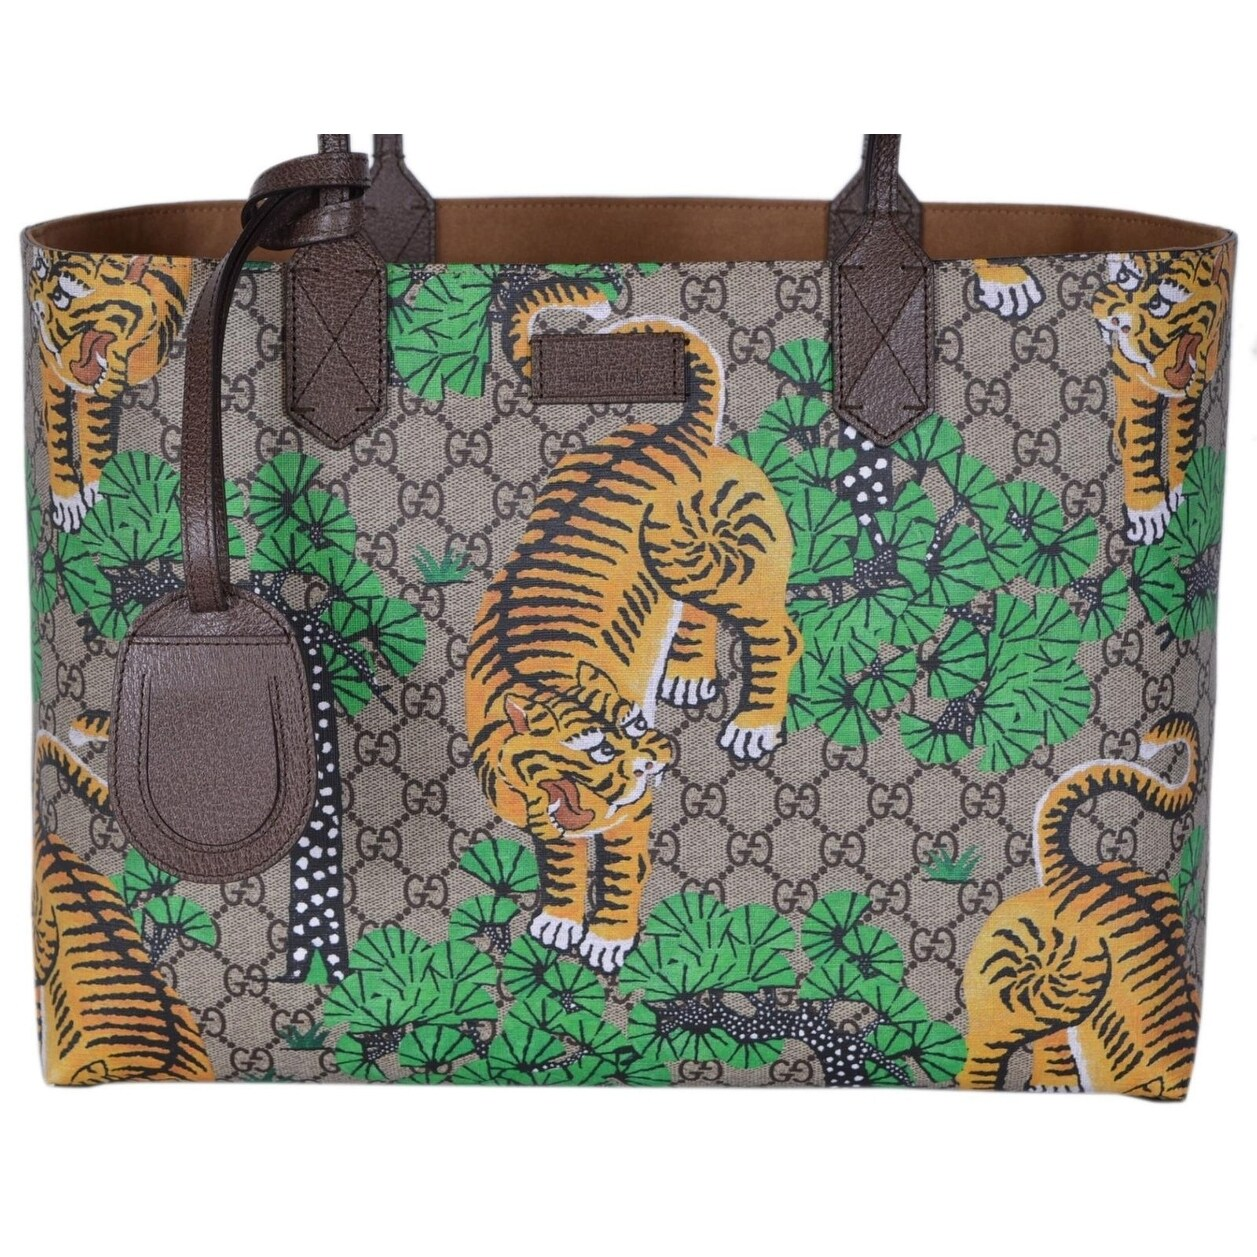 eee6685afc7 Gucci Outlet Sale On Bags